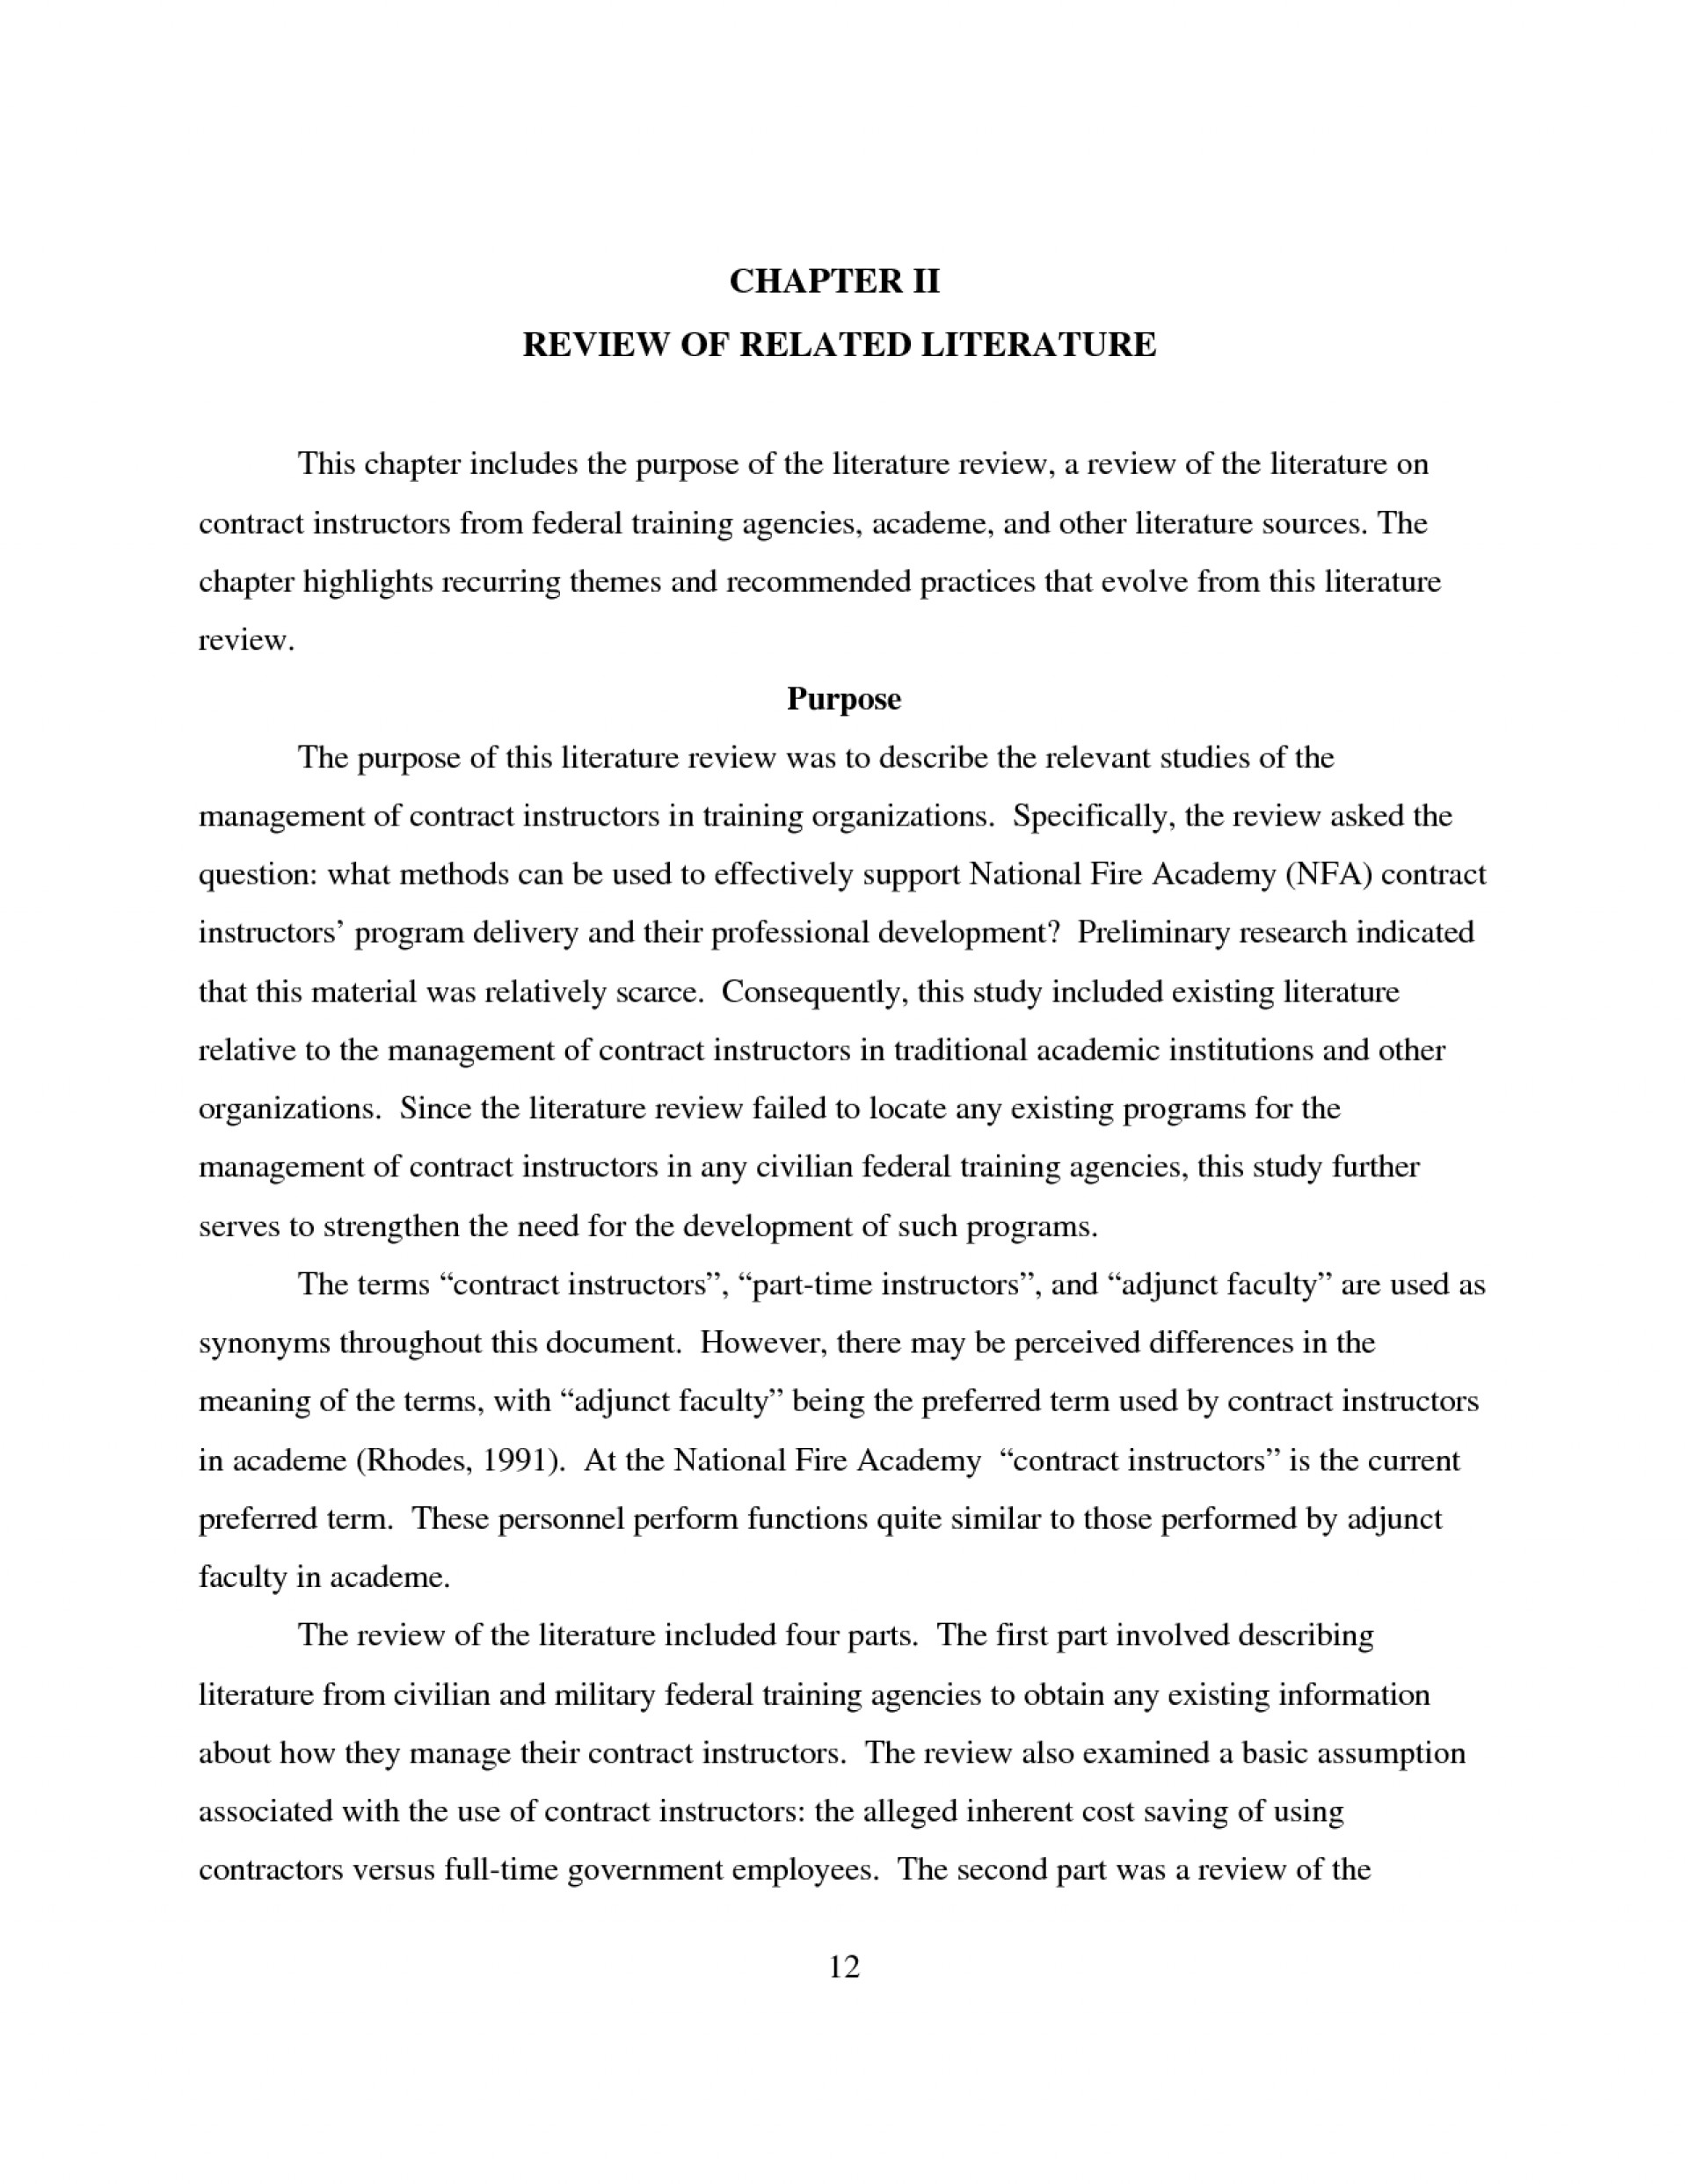 Need help with college essays